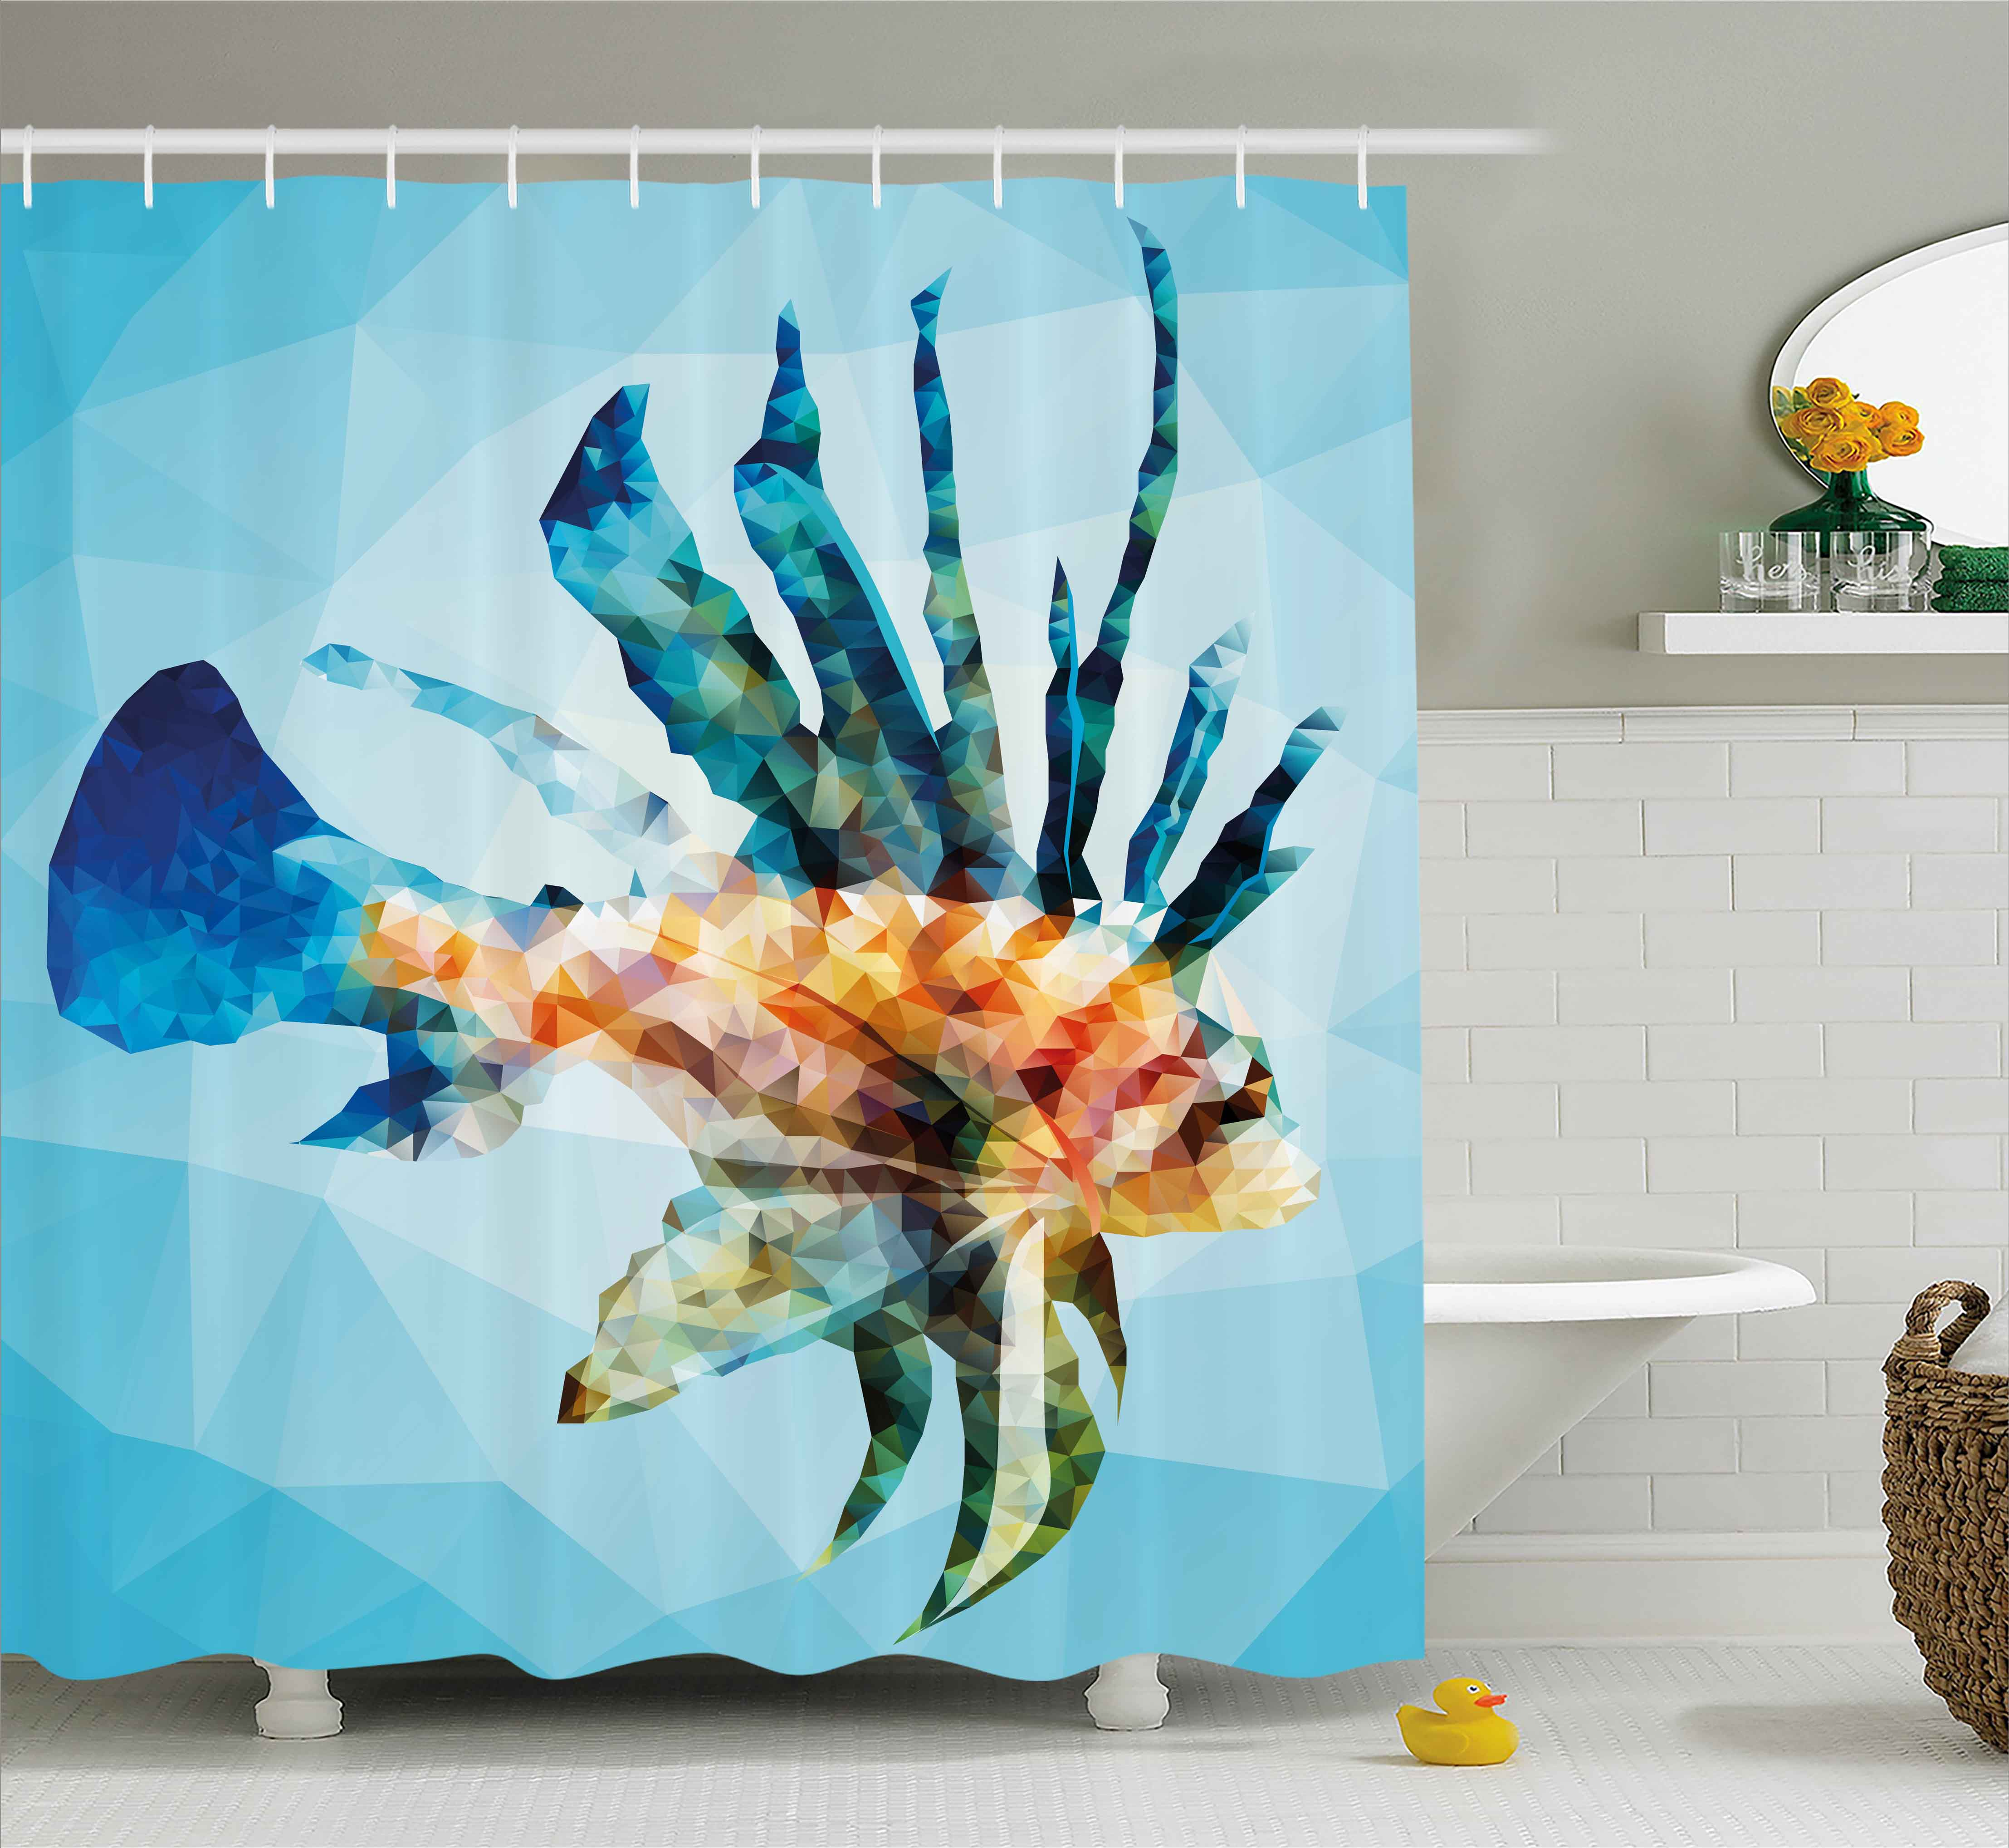 Fish Shower Curtain, Underwater Themed Ornamental Fish in the Style of Polygon Graphics Pattern, Fabric Bathroom Set with Hooks, 69W X 75L Inches Long, Blue and Sky Blue, by Ambesonne